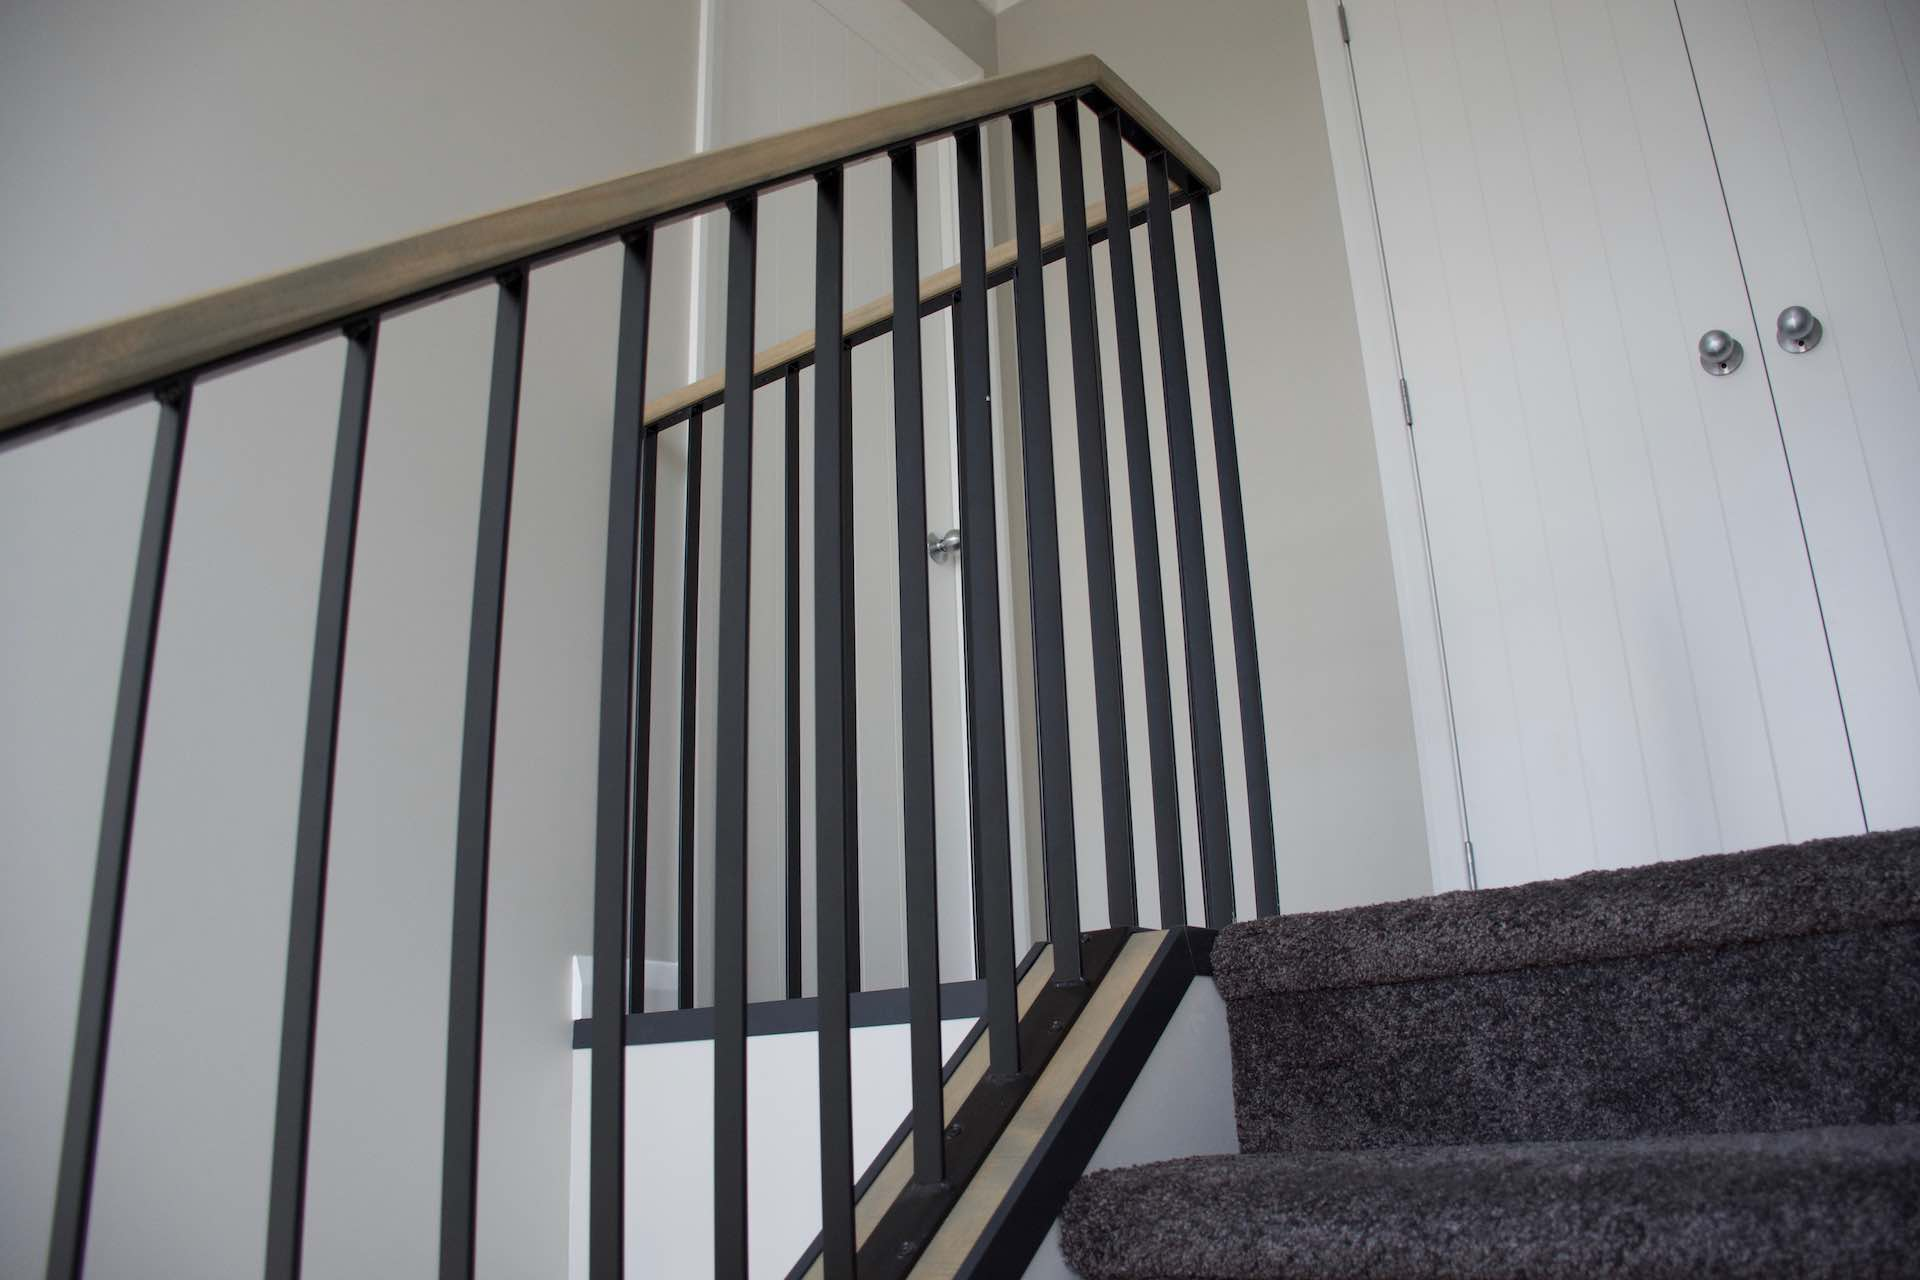 Steel balustrade in New Zealand built by Stairworks.